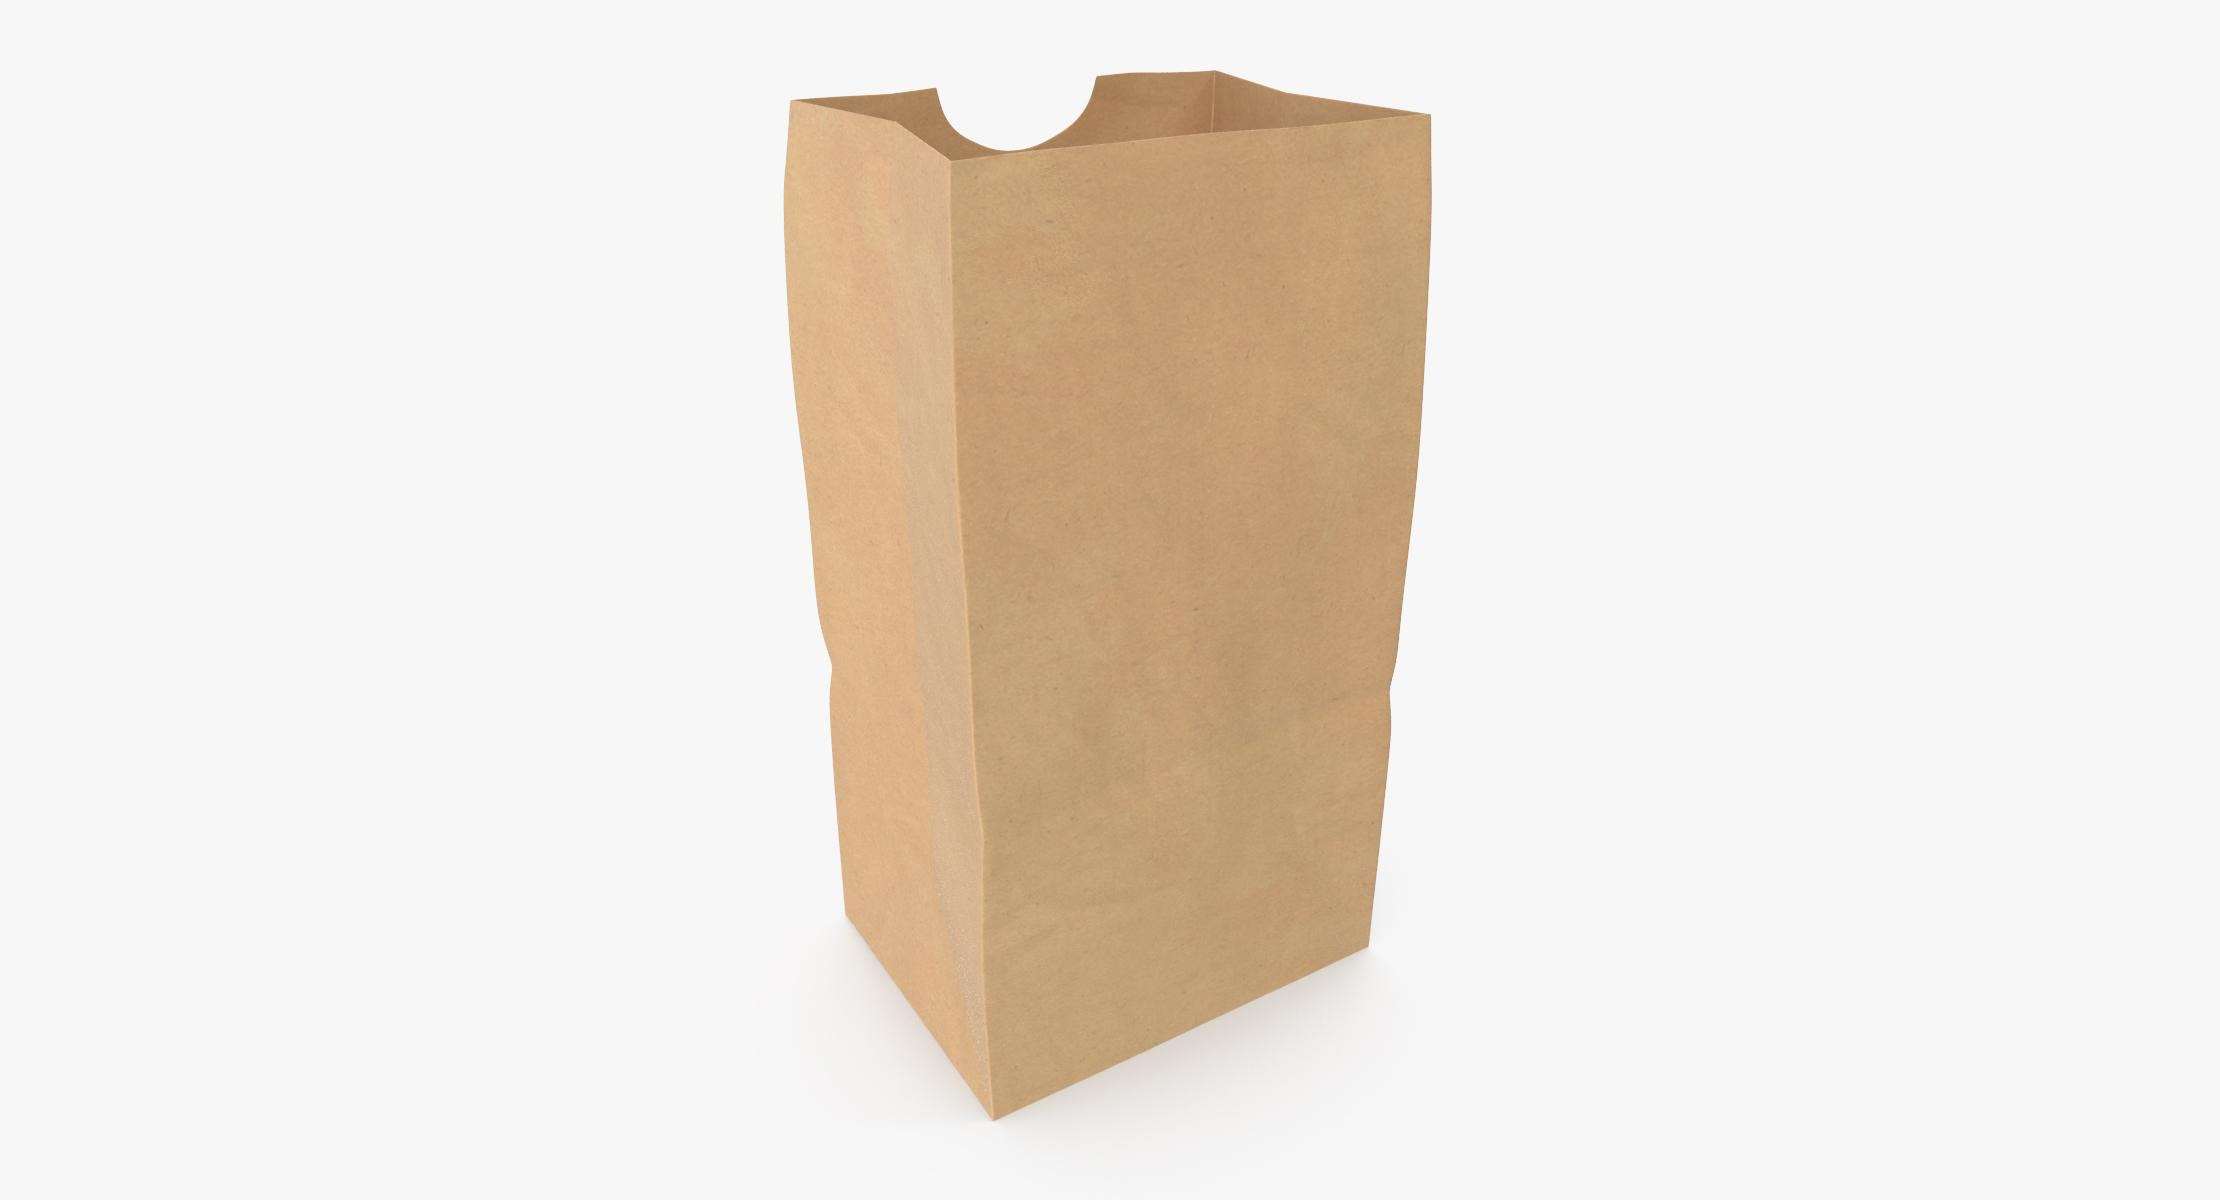 Grocery Bag No Handle Mockup Small Open model - reel 1